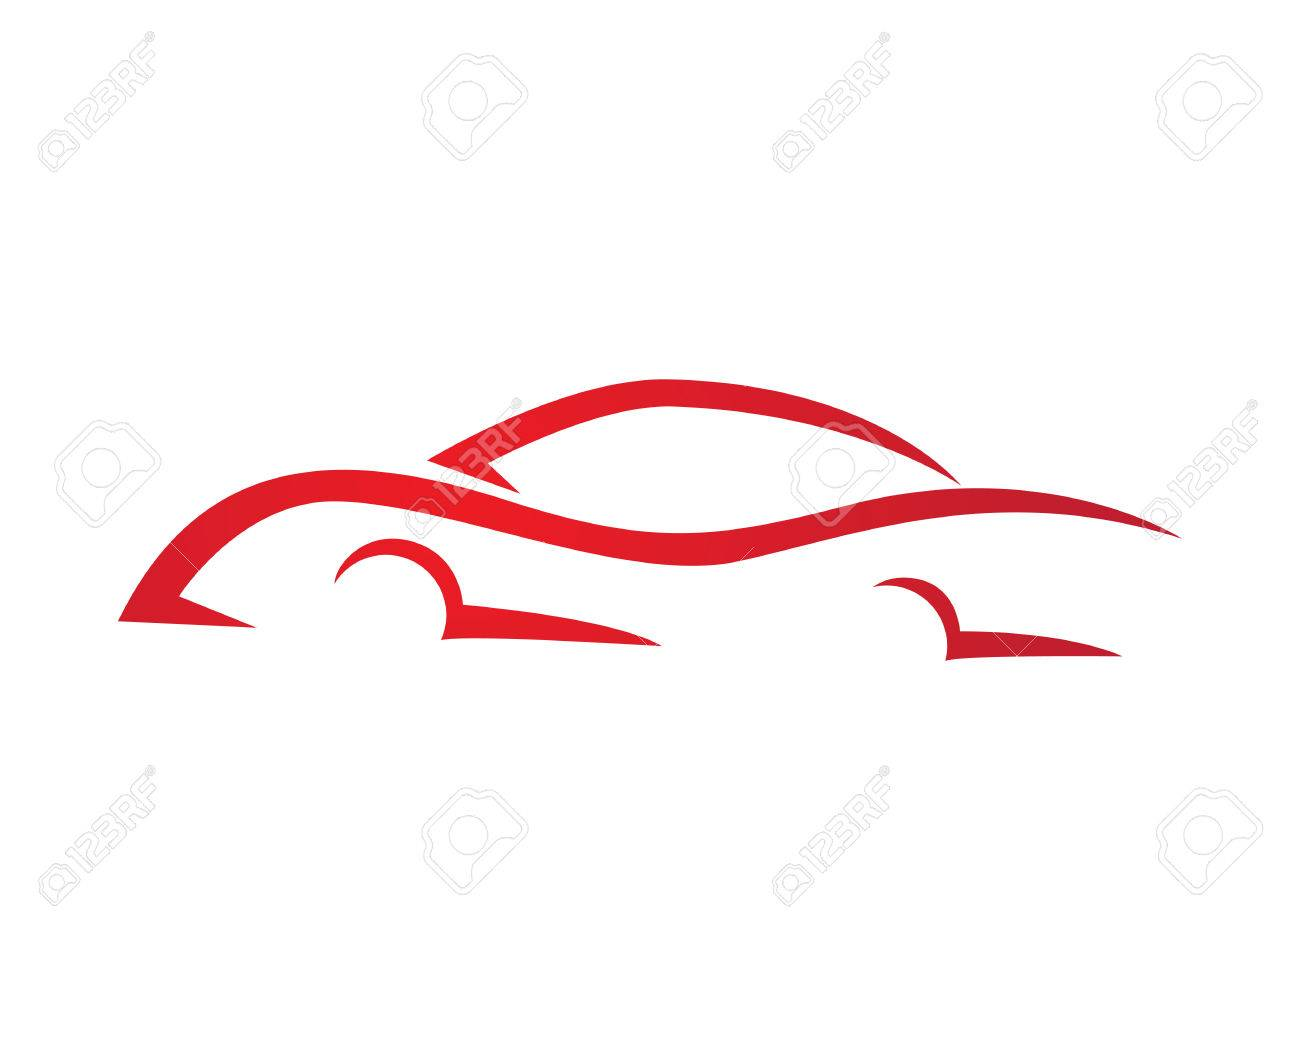 auto car logo template royalty free cliparts, vectors, and stock